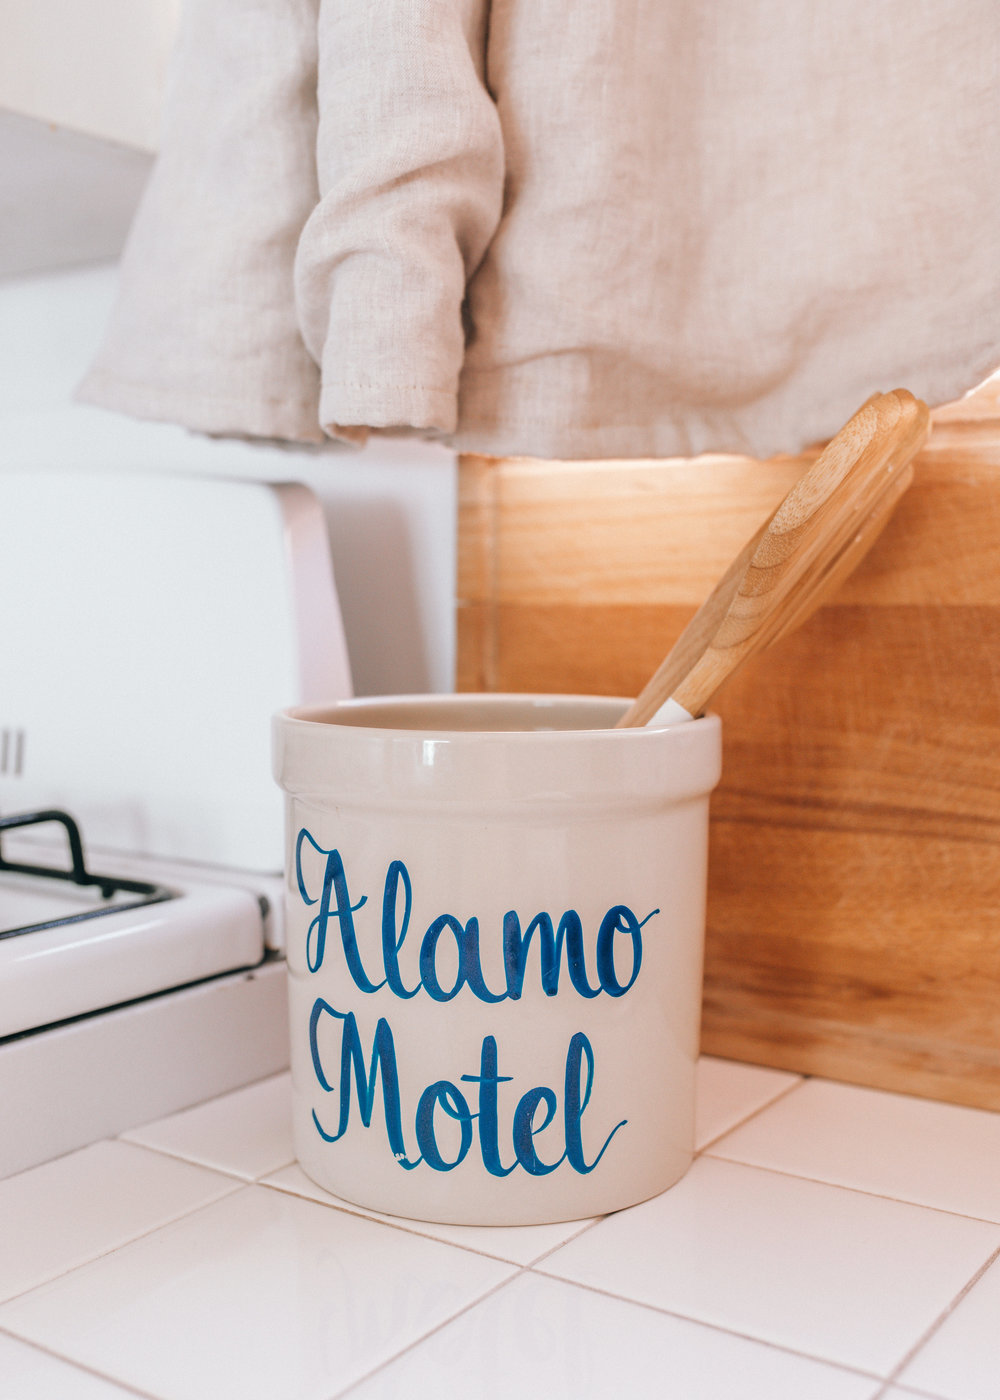 alamo-motel-by-lisa-linh